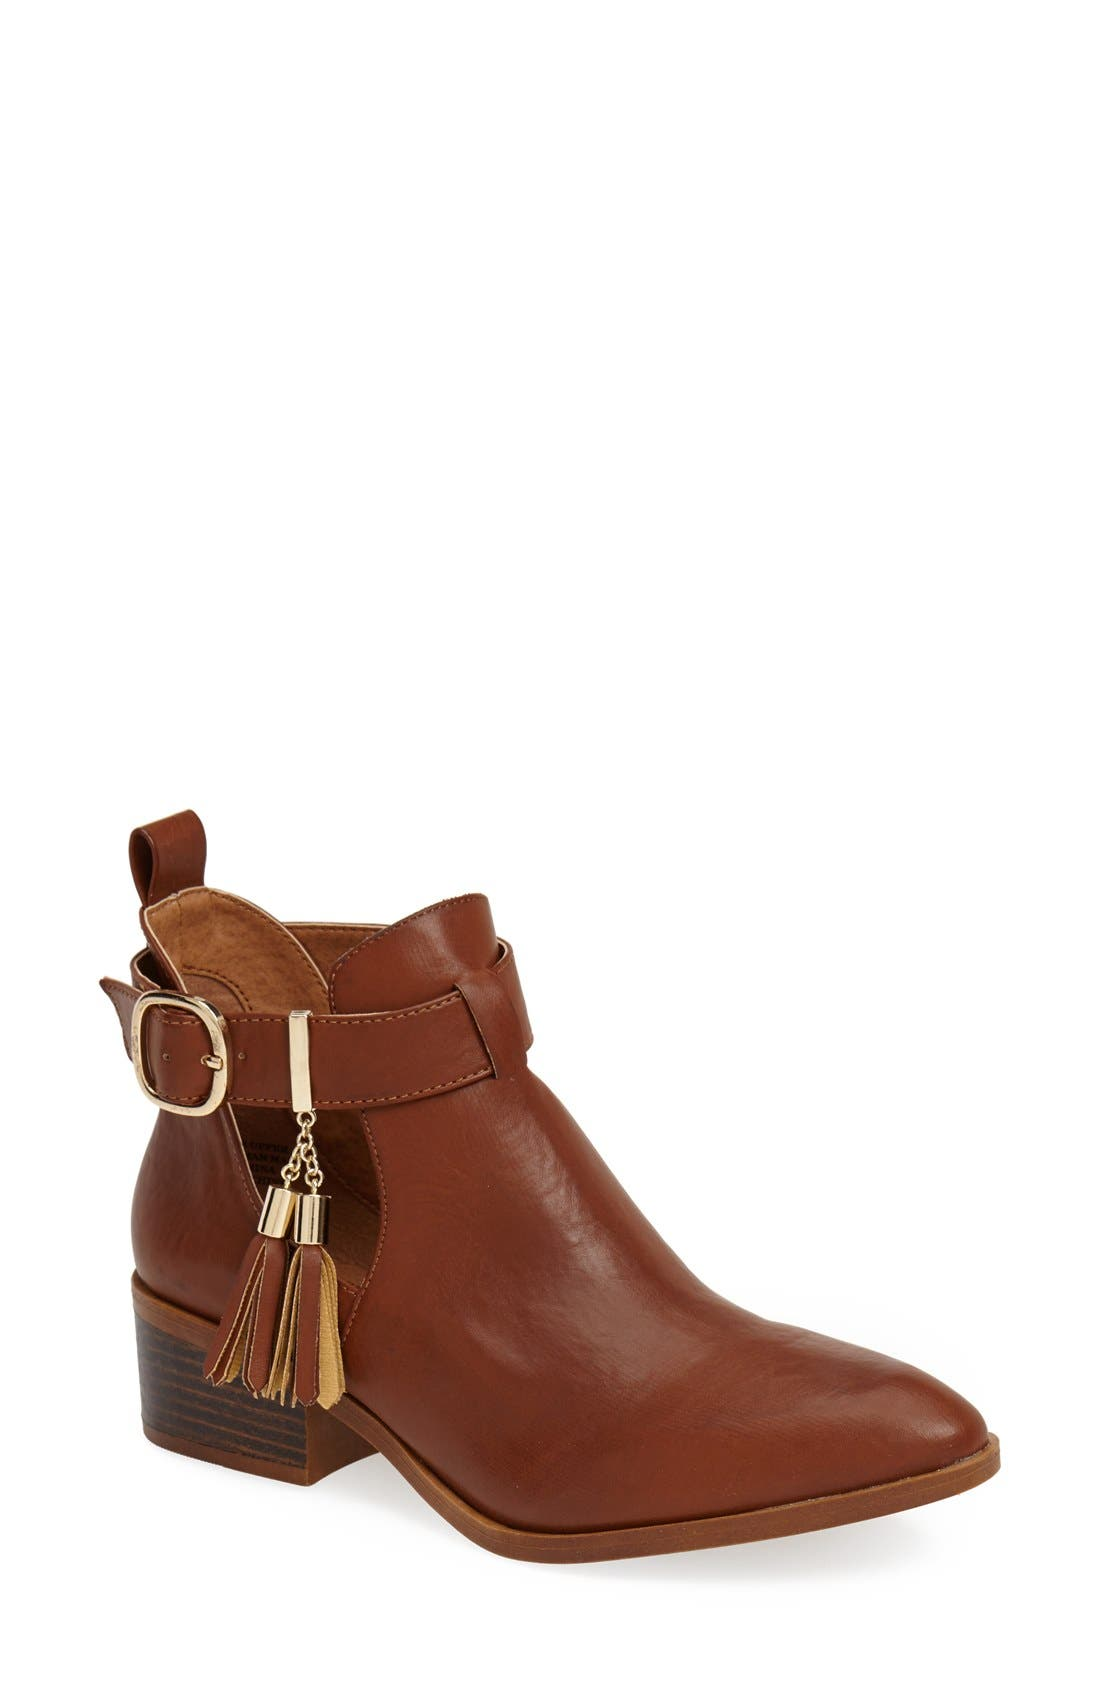 Main Image - BC Footwear 'Dress Up' Ankle Bootie (Women)